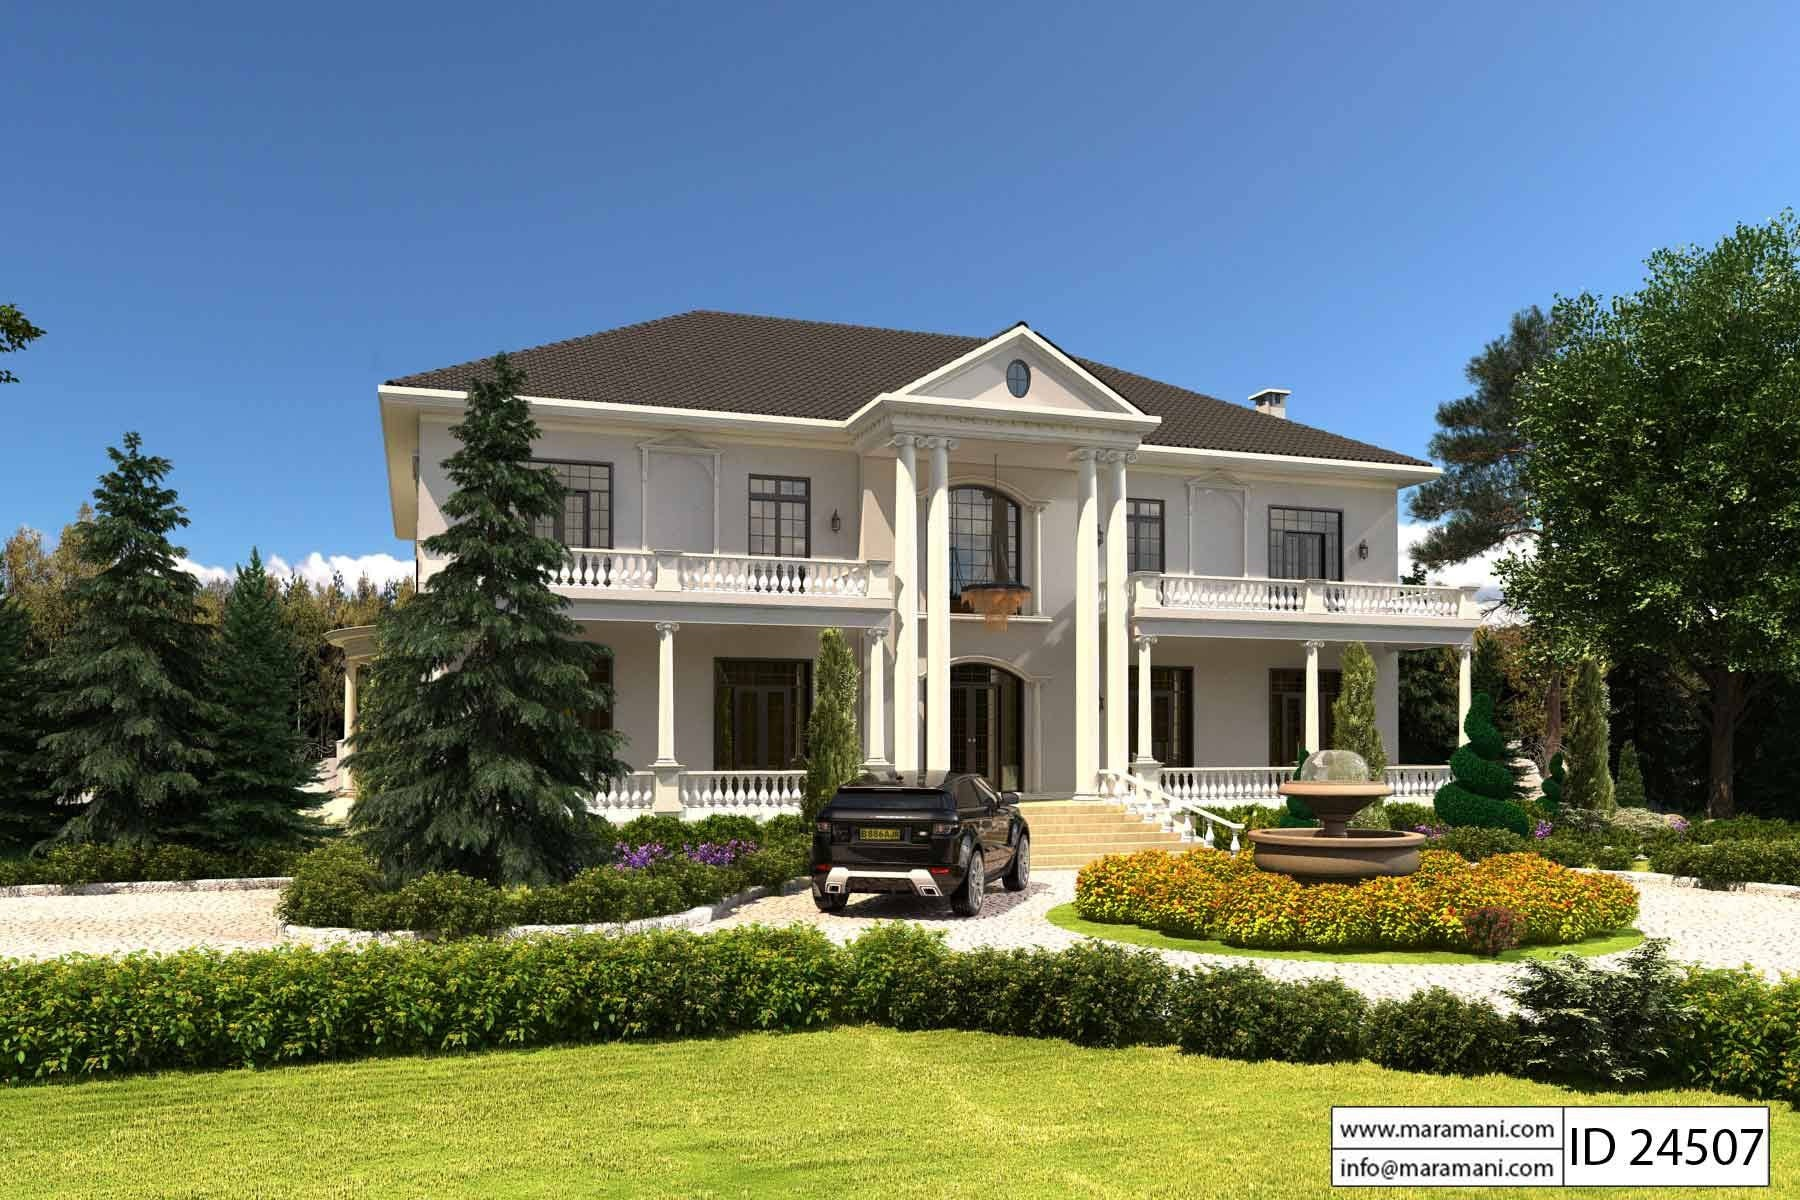 4 bedroom maisonette id 24507 house plans by maramani for Maisonette house plans